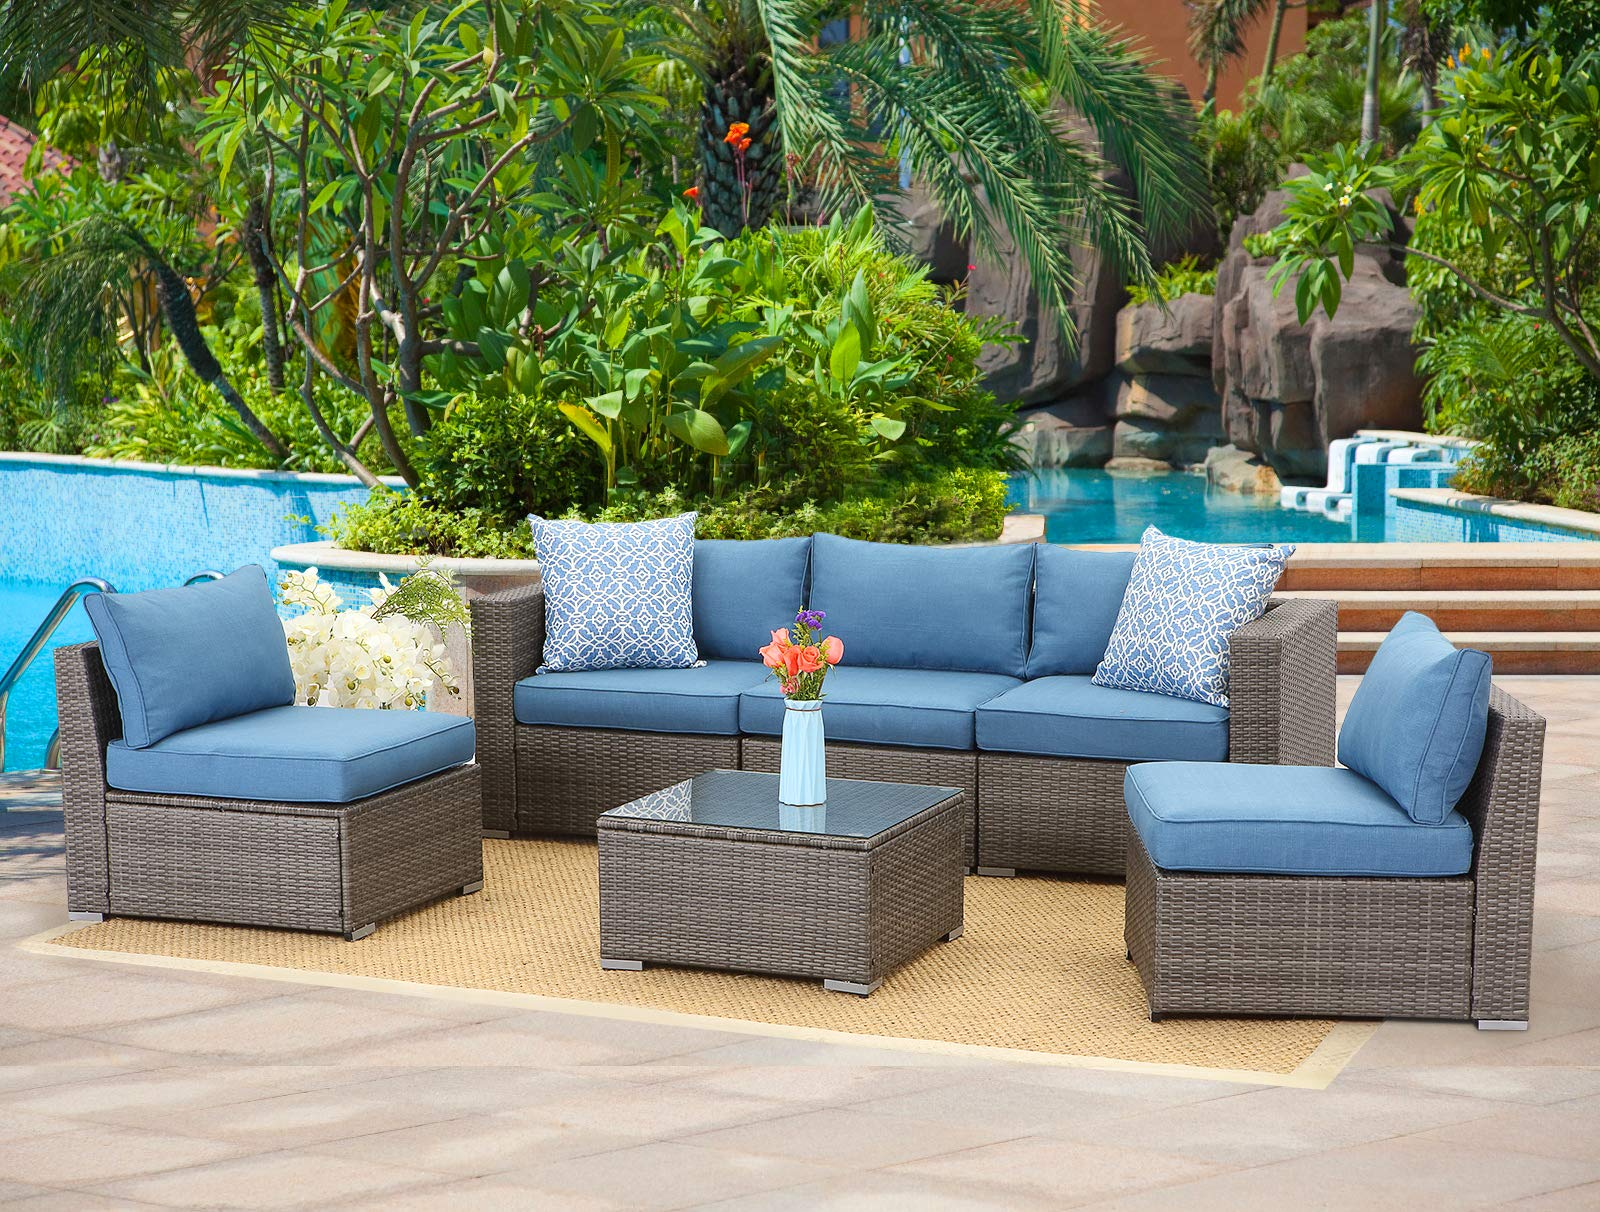 Wisteria Lane 6-Piece Outdoor Furniture Set Modular Wicker Patio Sectional Sofa Couch for Garden Backyard,Sophisticated Glass Coffee Table with Fabric Cushions,Upgrade Blue Cushion